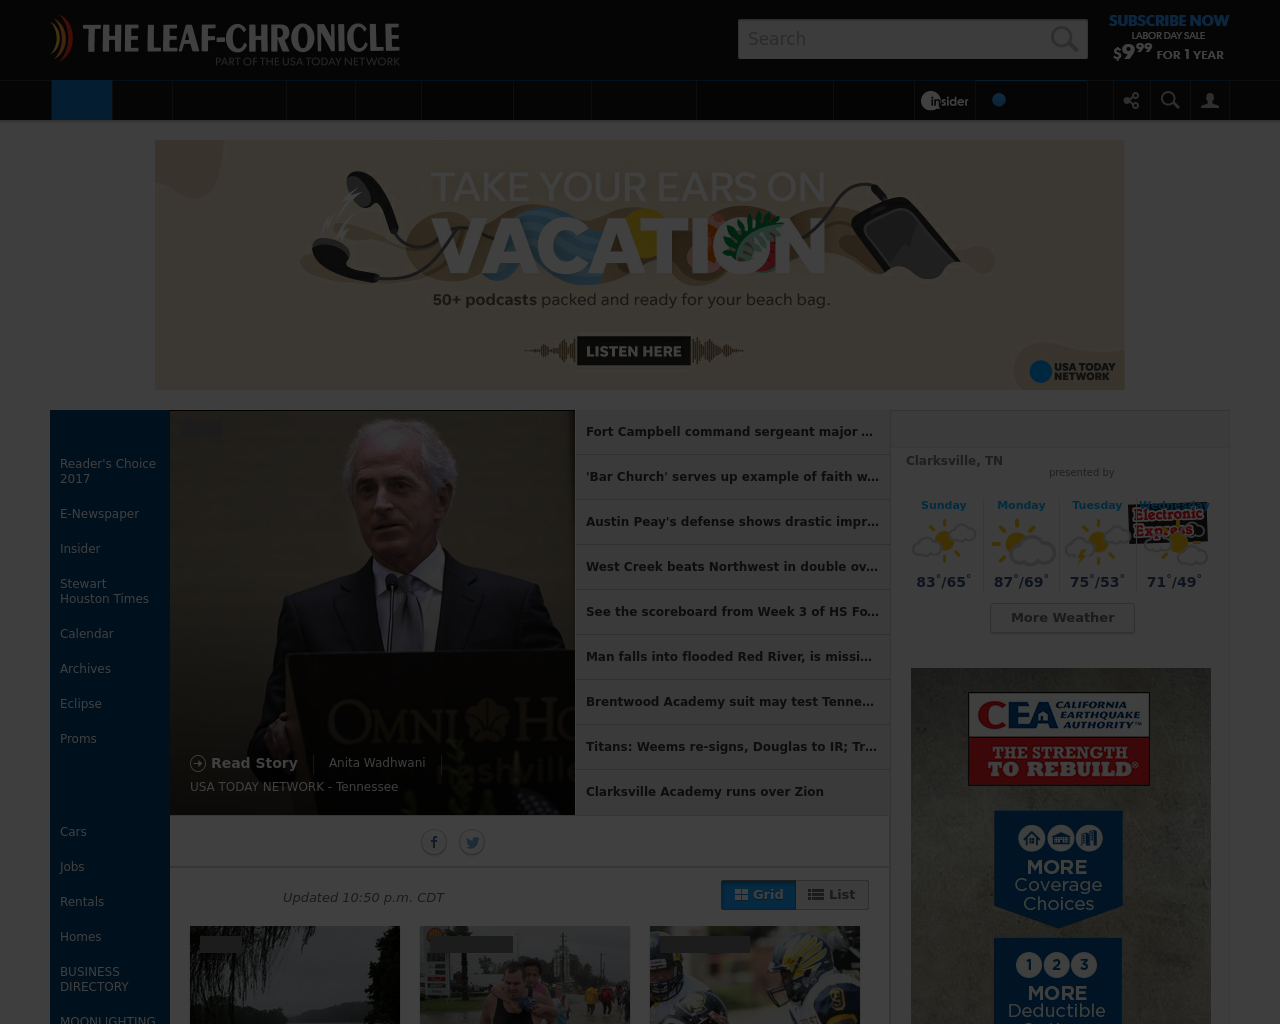 The-Leaf-Chronicle-Advertising-Reviews-Pricing